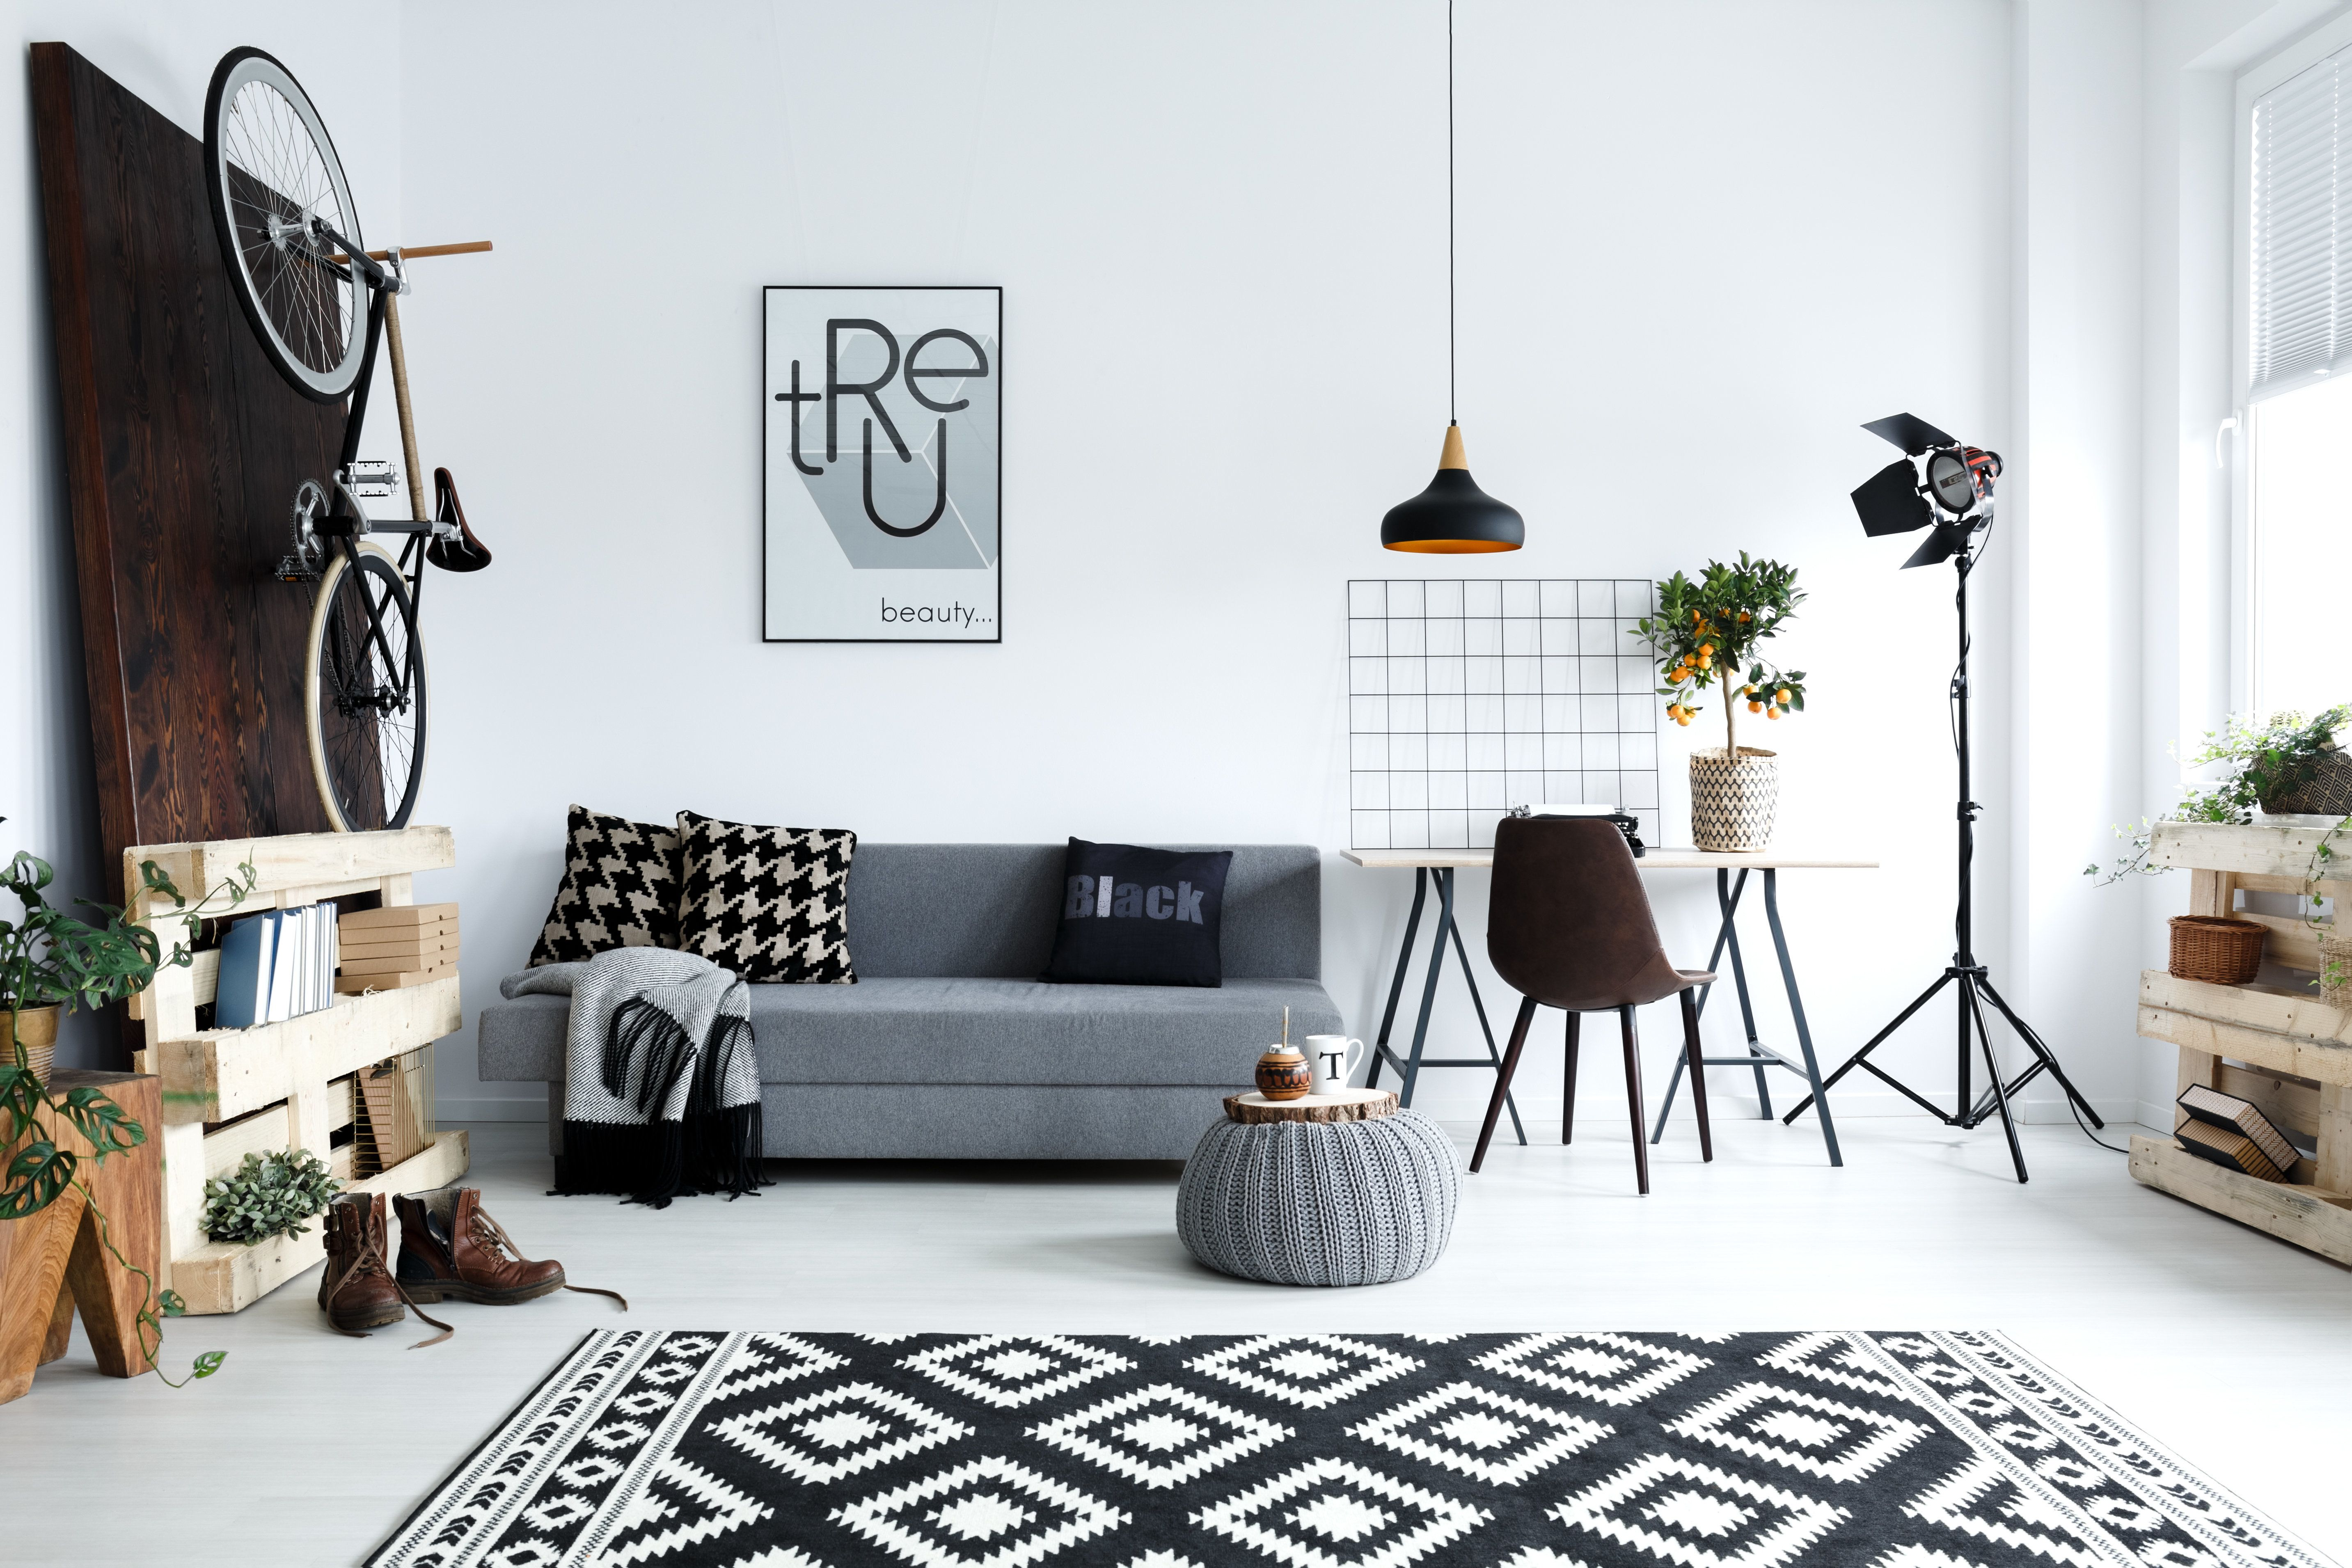 29 Budget Friendly Sites To Find Cheap Home Decor   HuffPost KatarzynaBialasiewicz via Getty Images